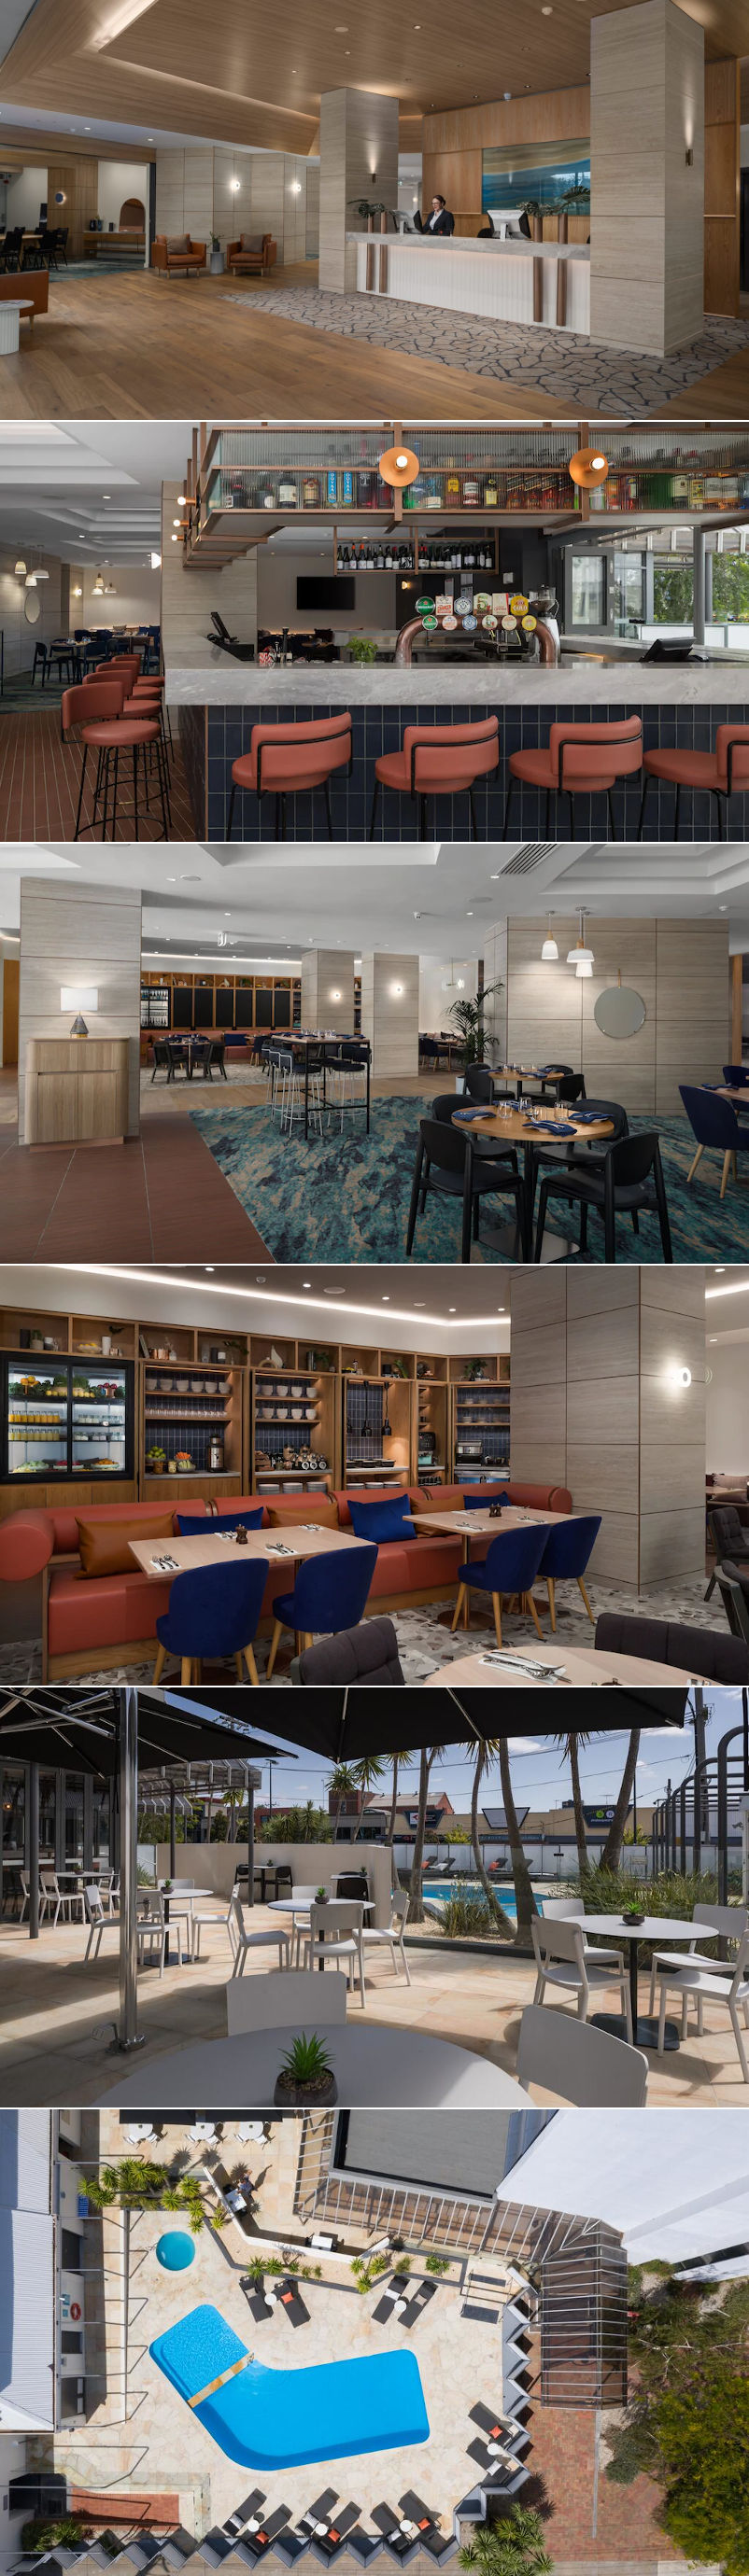 Rydges Geelong - Hotels facilities